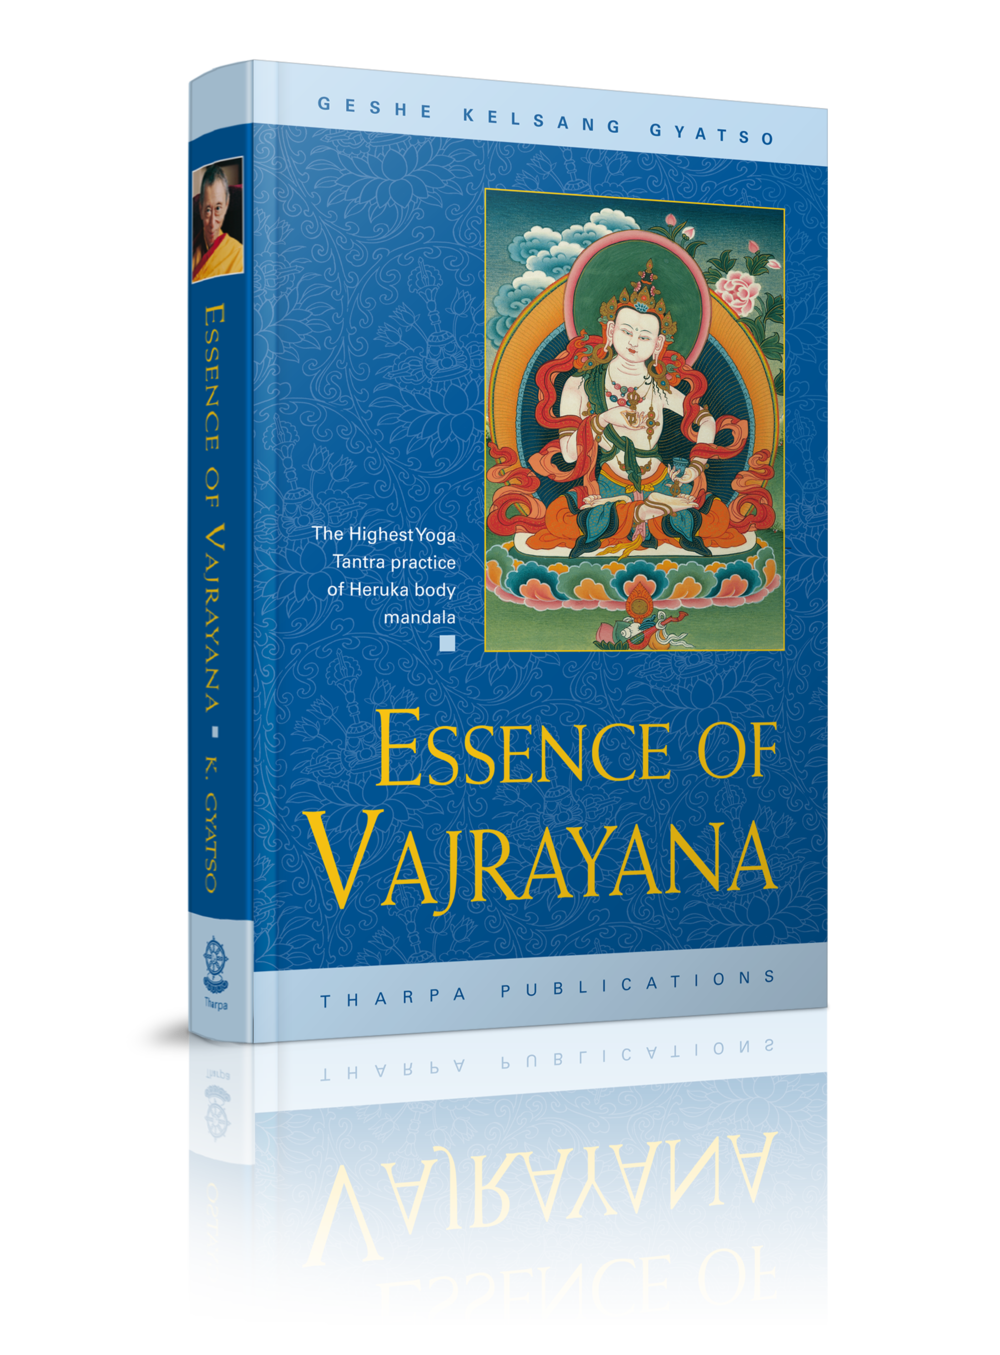 book-Essence of Vajrayana_3D_02-2012 (Spine Extended).png